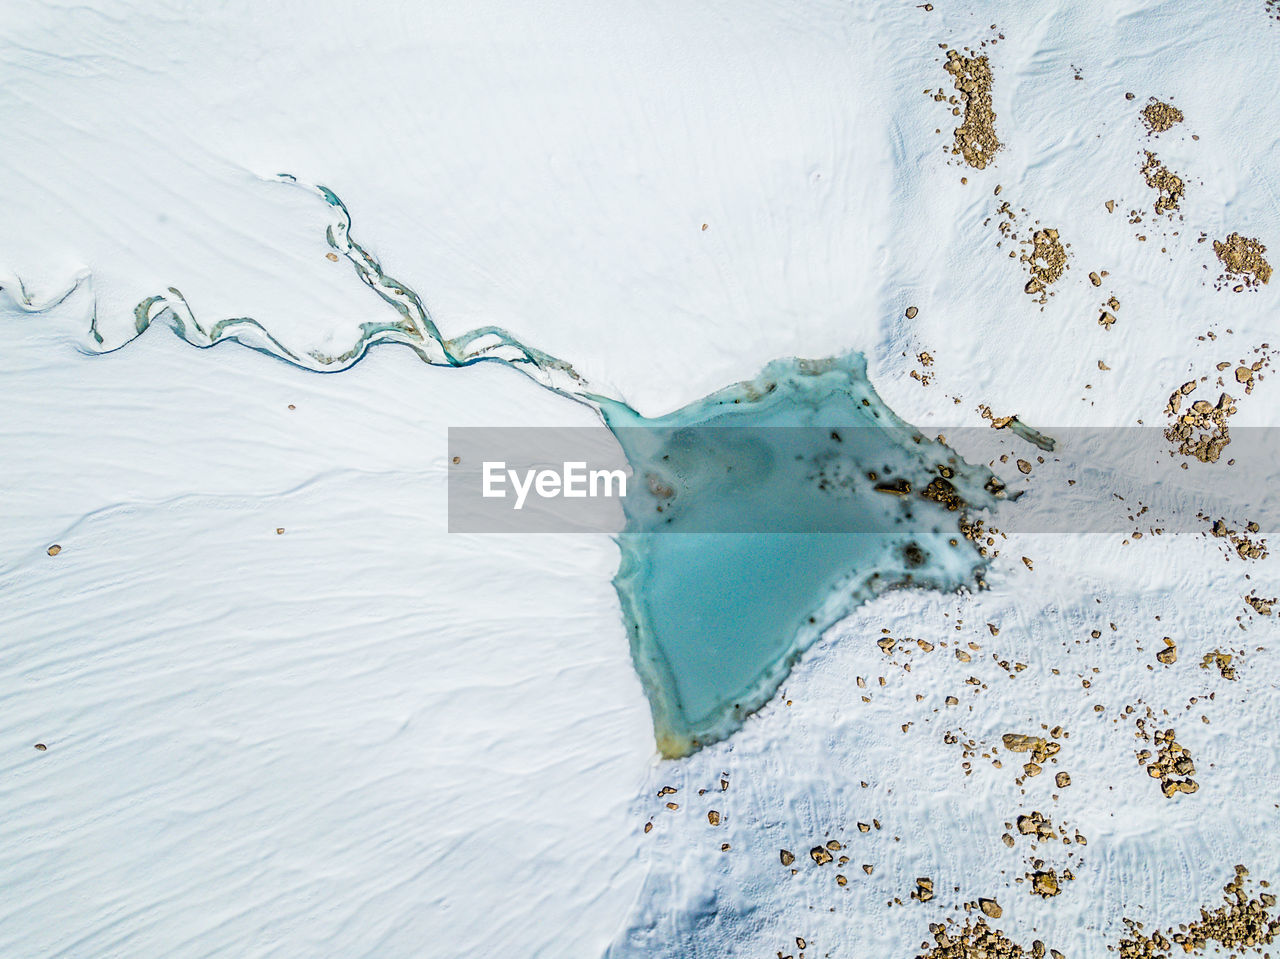 Aerial view of glacial lake